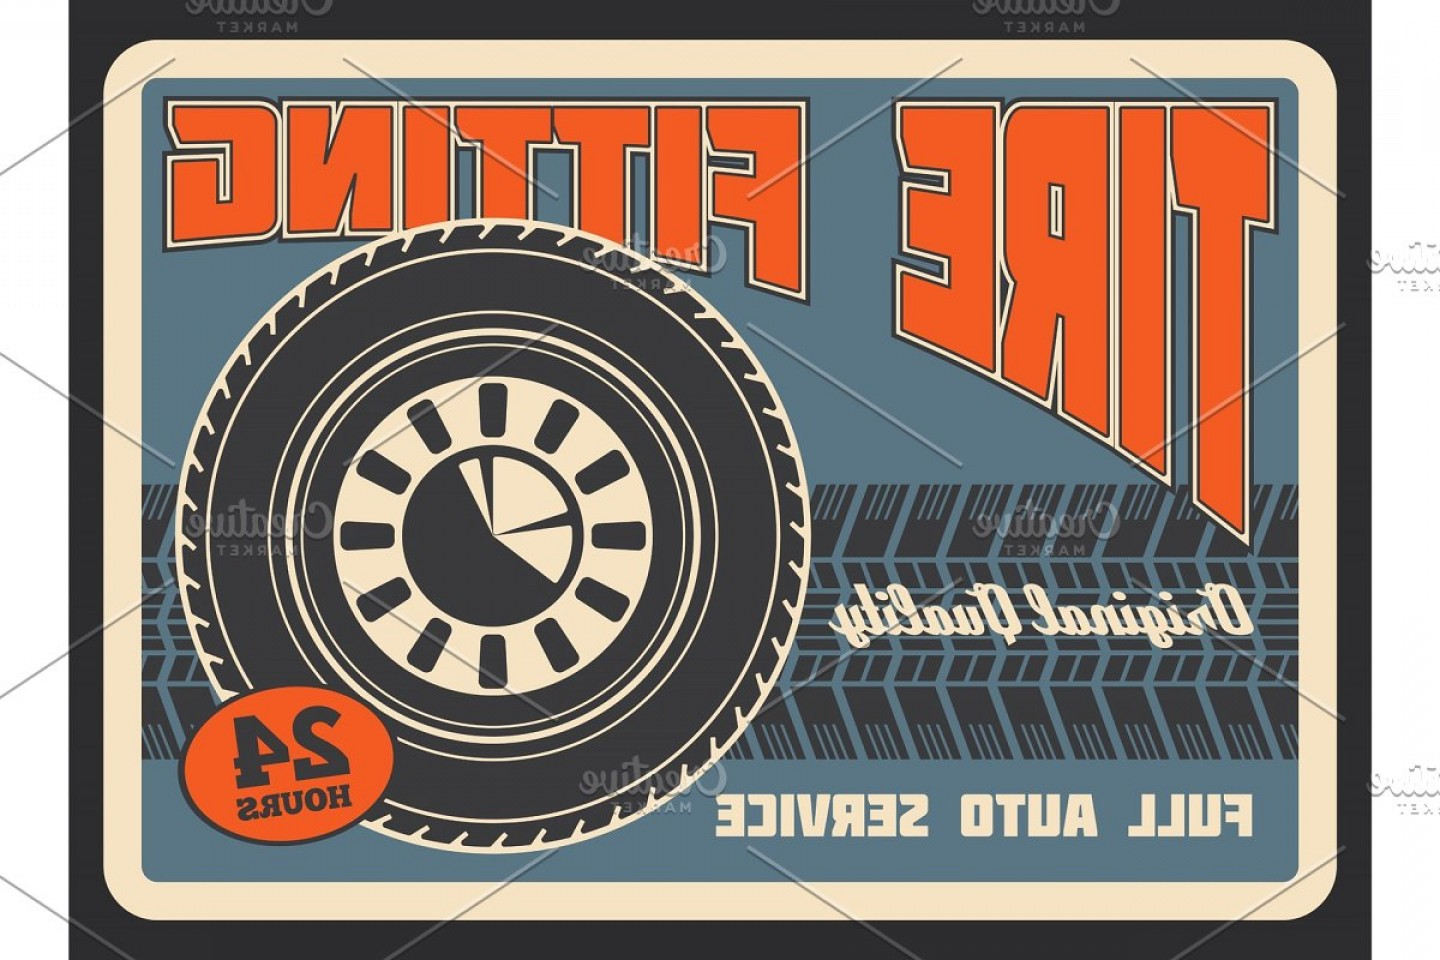 Retro Poster Vector: Retro Poster For Car Tire Fitting